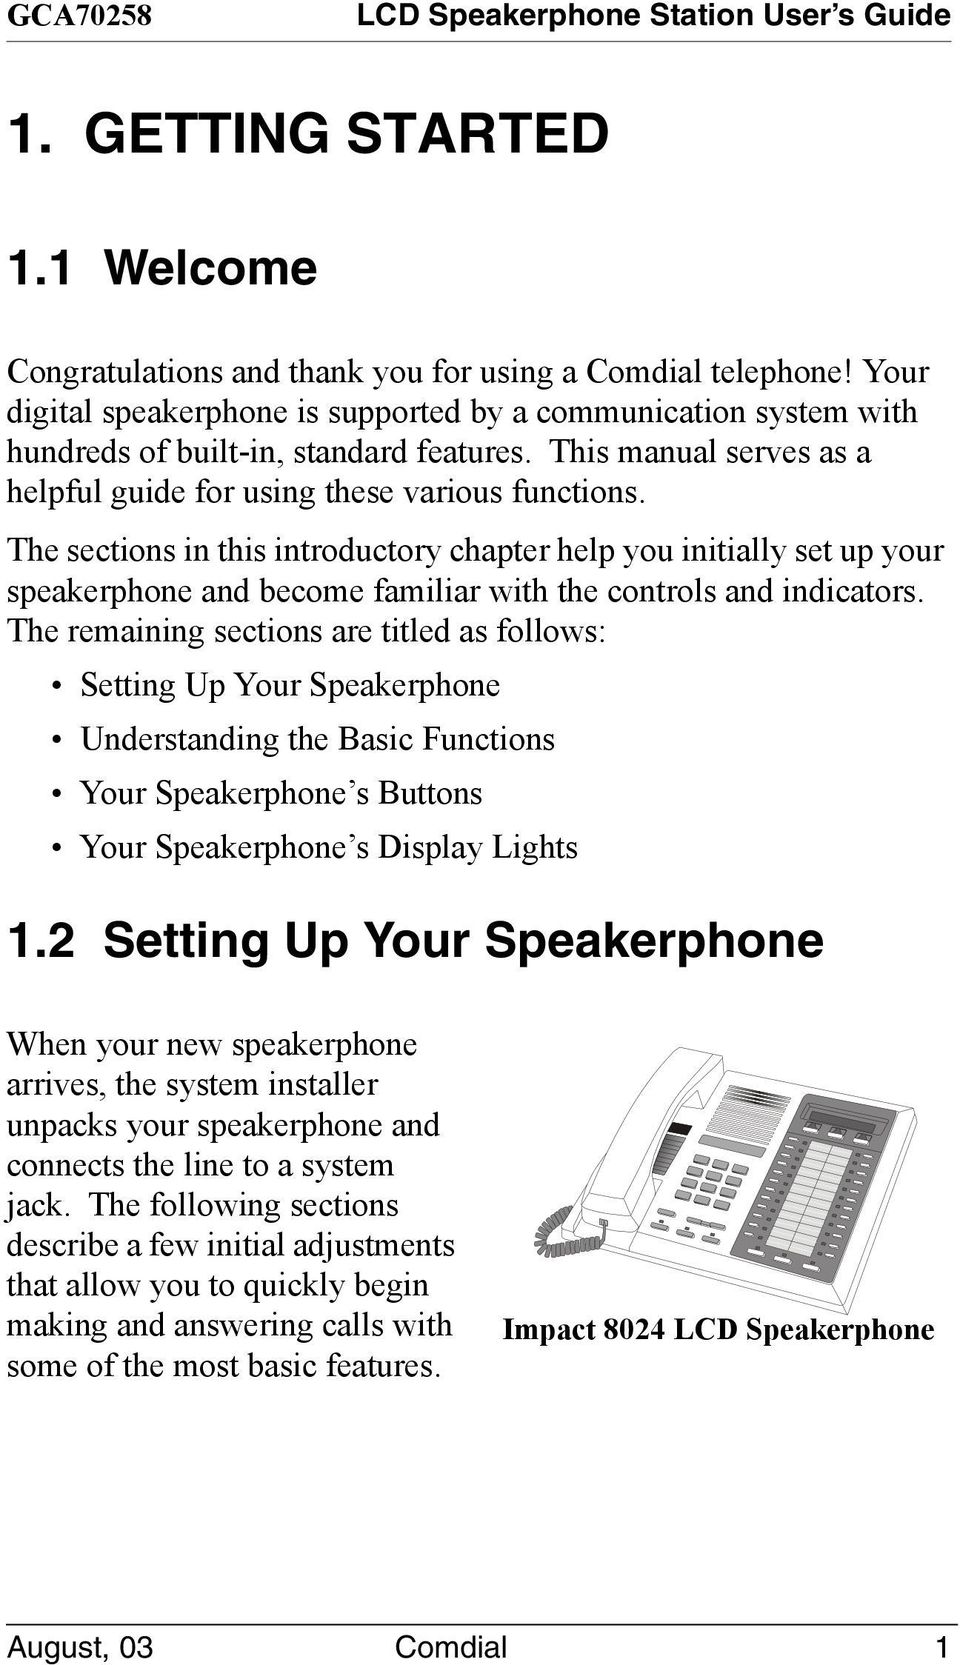 The sections in this introductory chapter help you initially set up your speakerphone and become familiar with the controls and indicators.